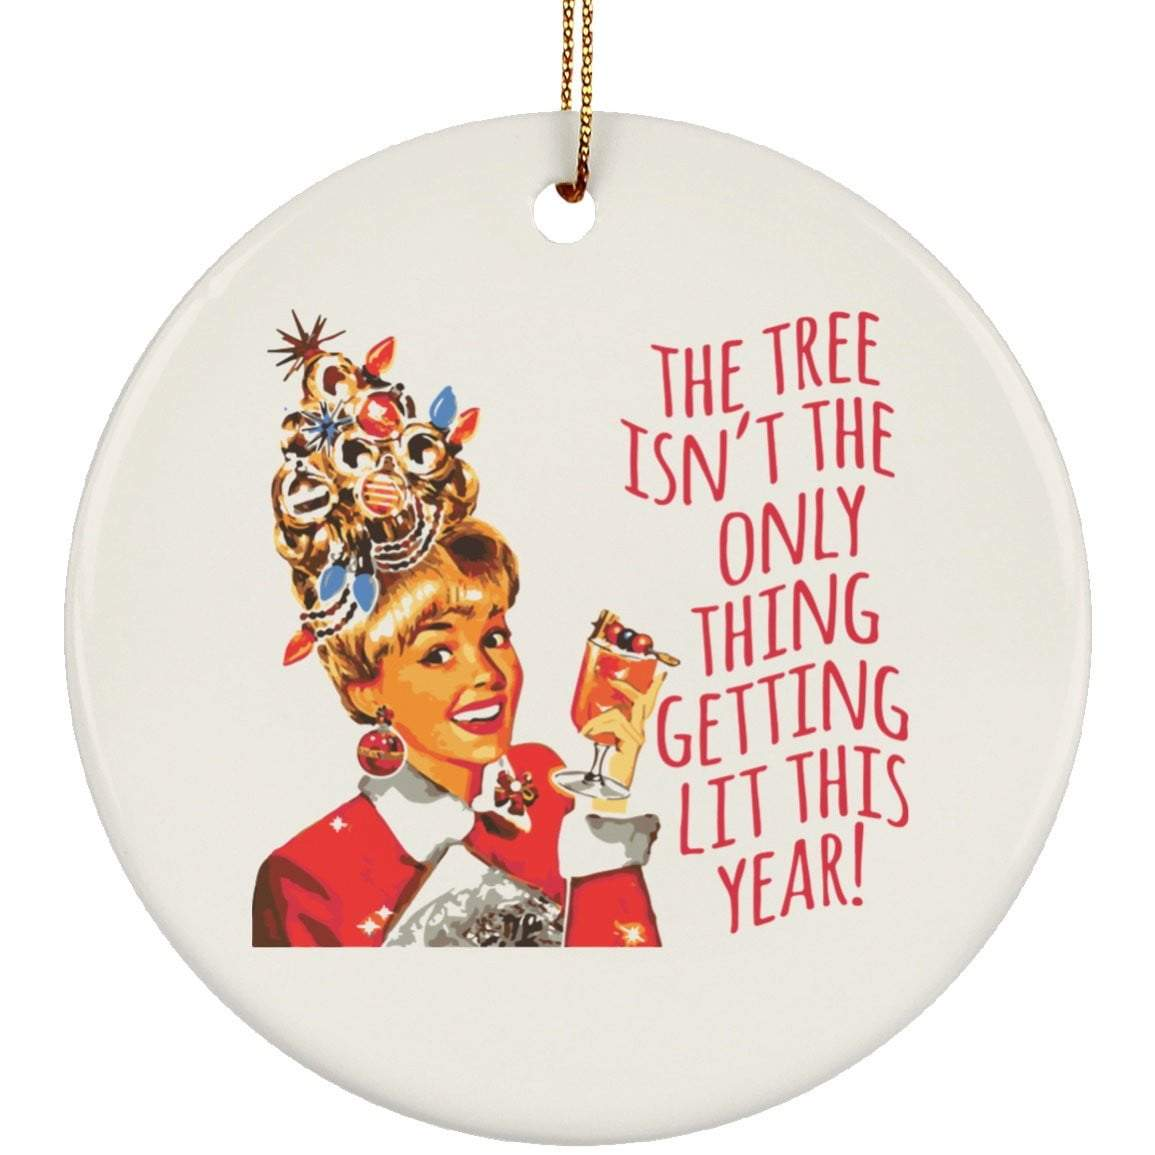 GETTING LIT VINTAGE Christmas Ceramic Circle Ornament